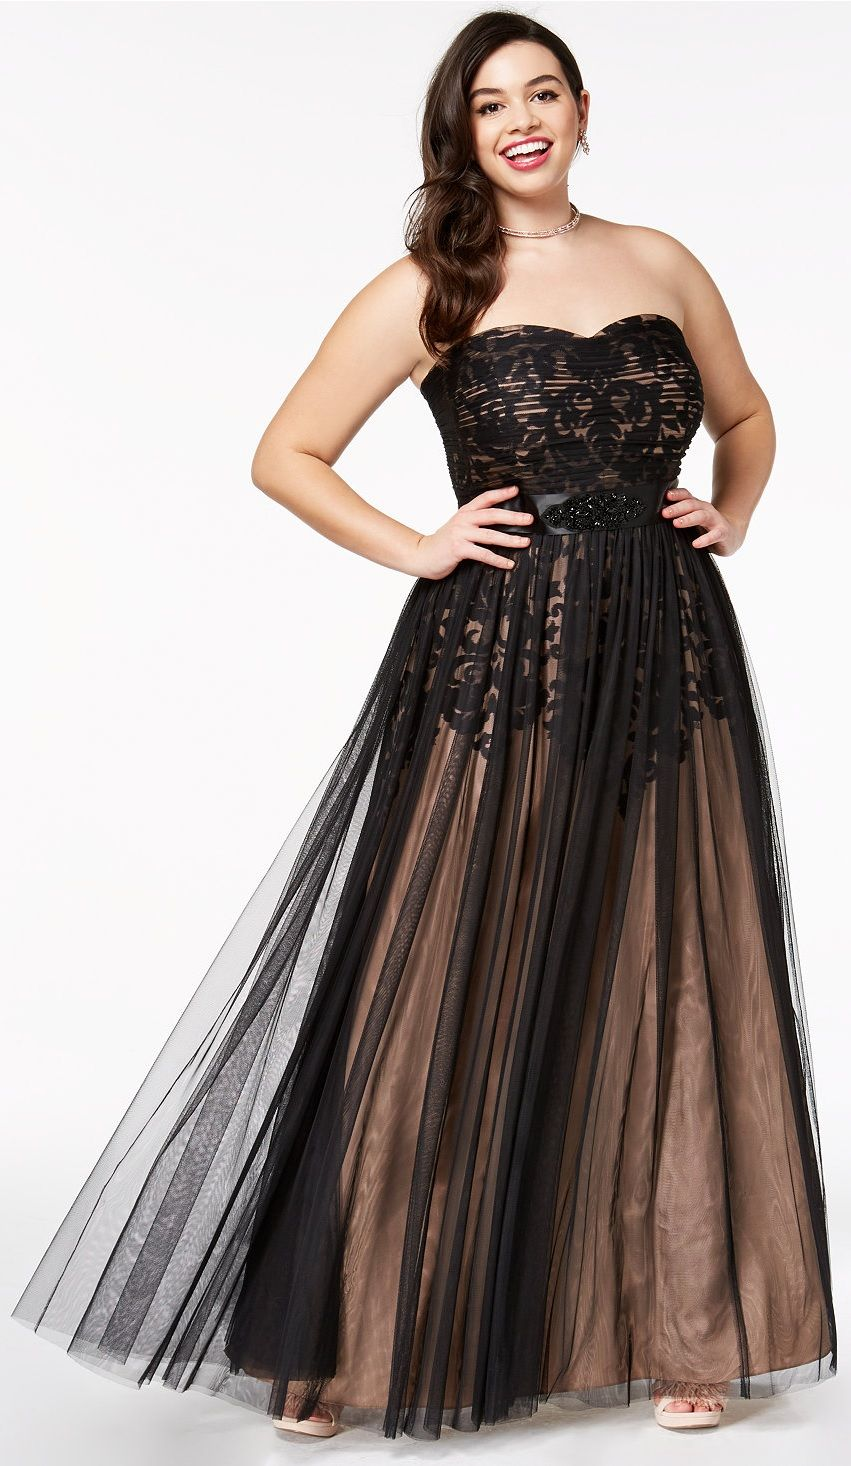 Plus Size Strapless Tulle-Overlay Ball Gown #plussize | ΦΟΡΕΜΑΤΑ ...